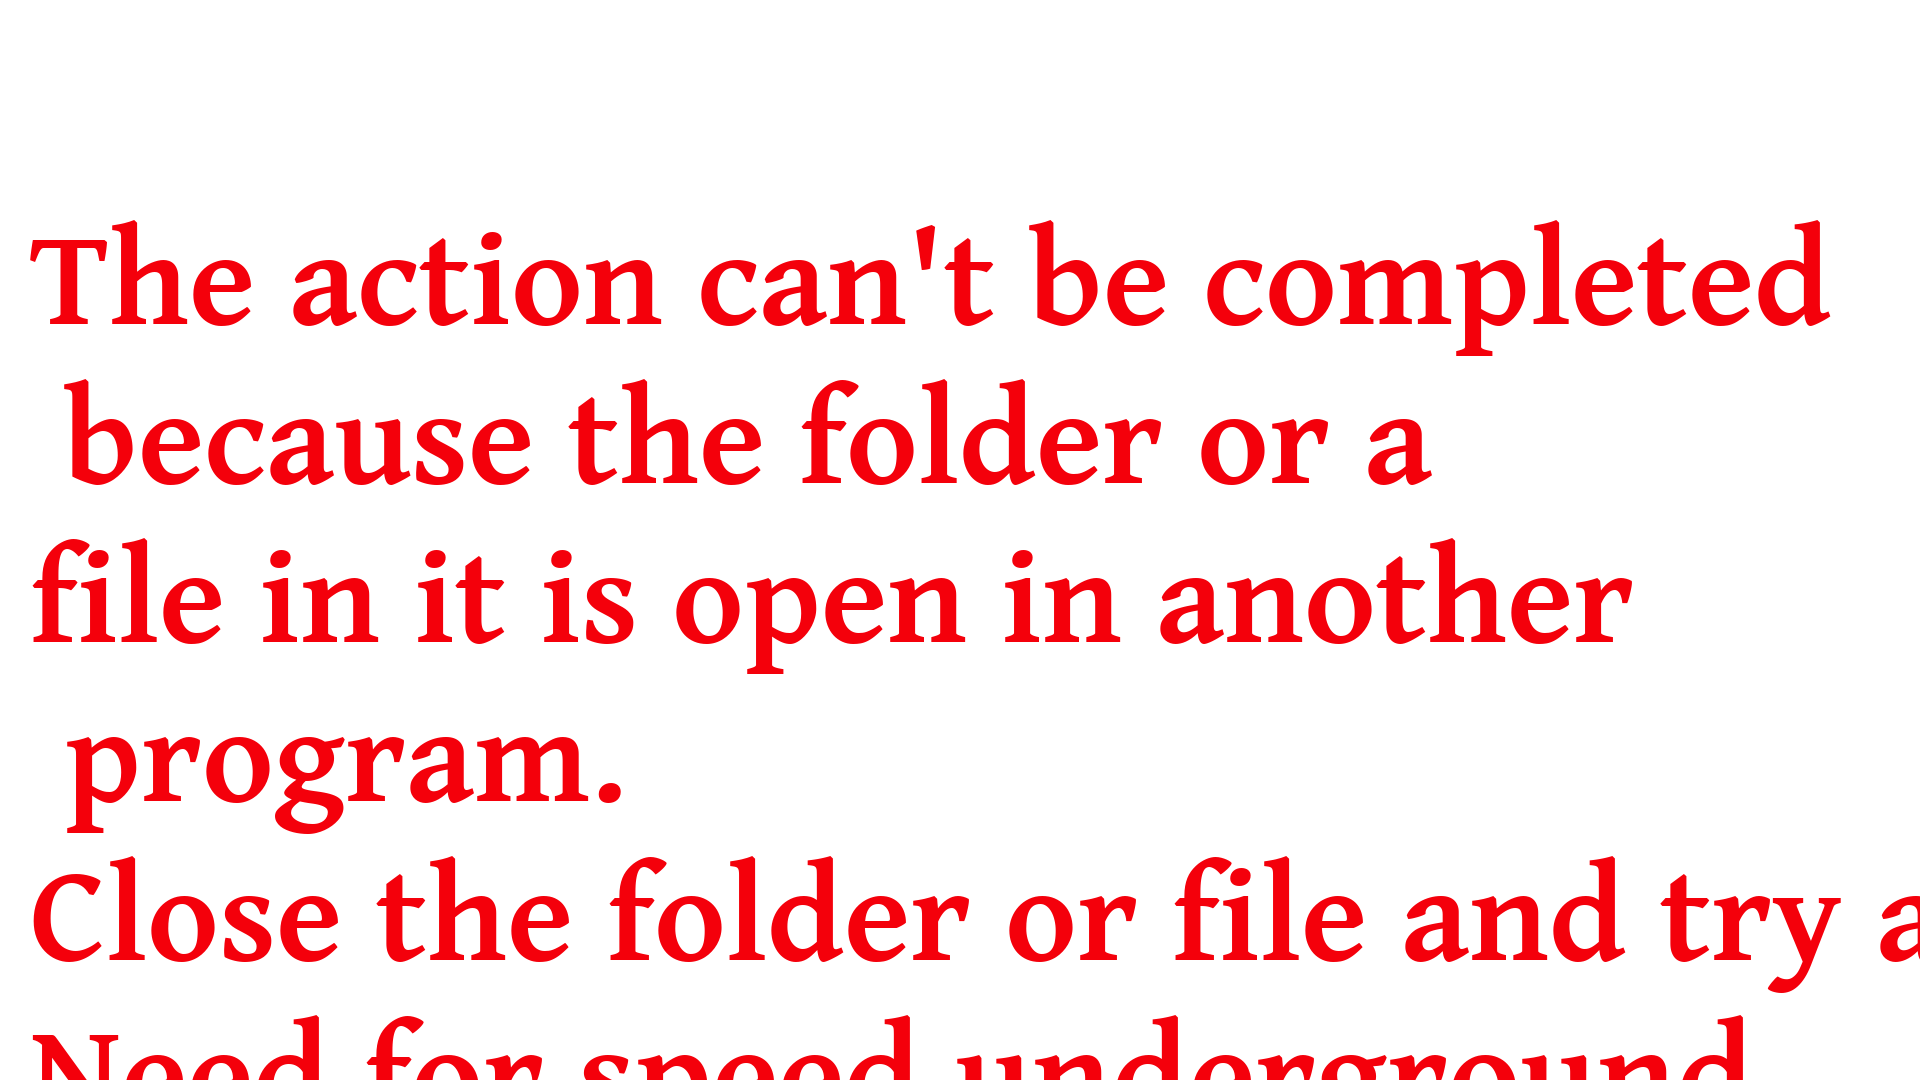 The action can't be completed because the folder or a file in it is open in another program.Close the folder or file and try again